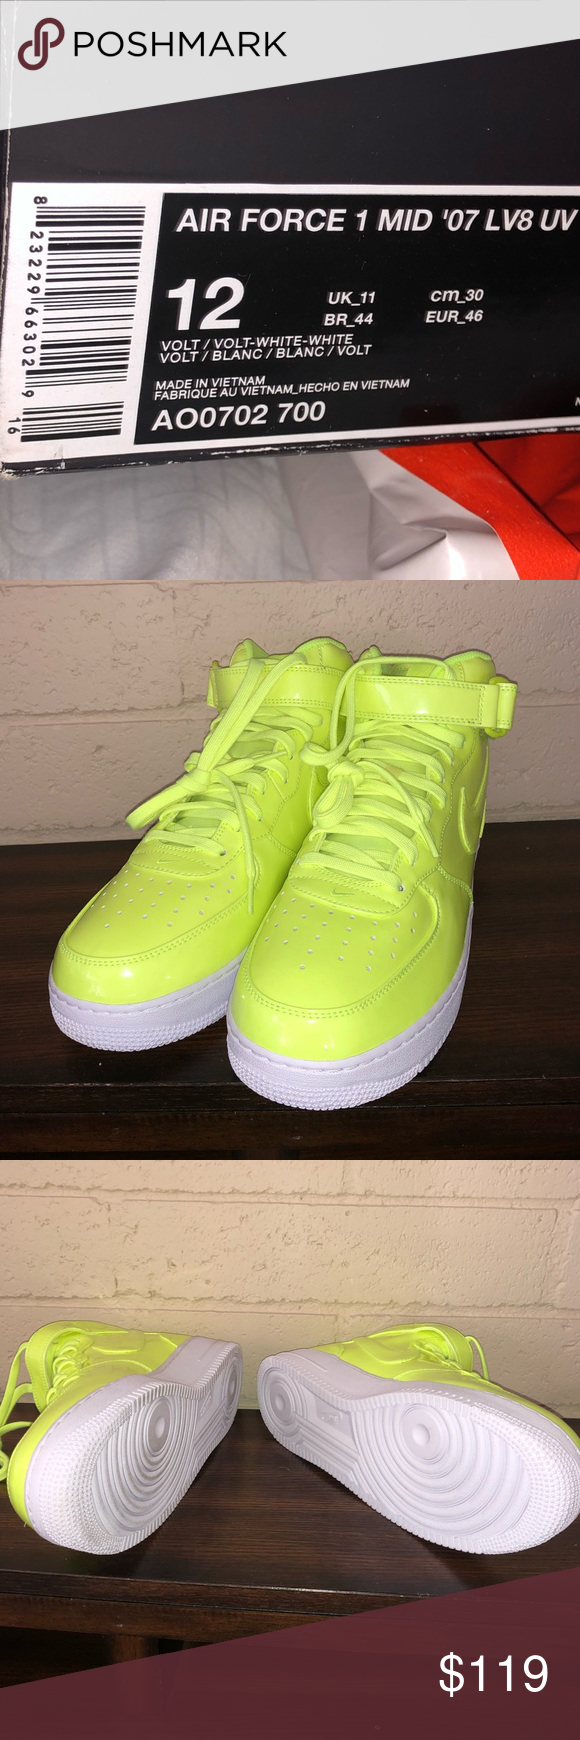 the latest 84630 5997c Nike Nike Air Force 1 Mid  07 LV8 UV Volt White Men s Shoes Sz 12 (AO0702  700) Condition is New with box. Nike Shoes Sneakers